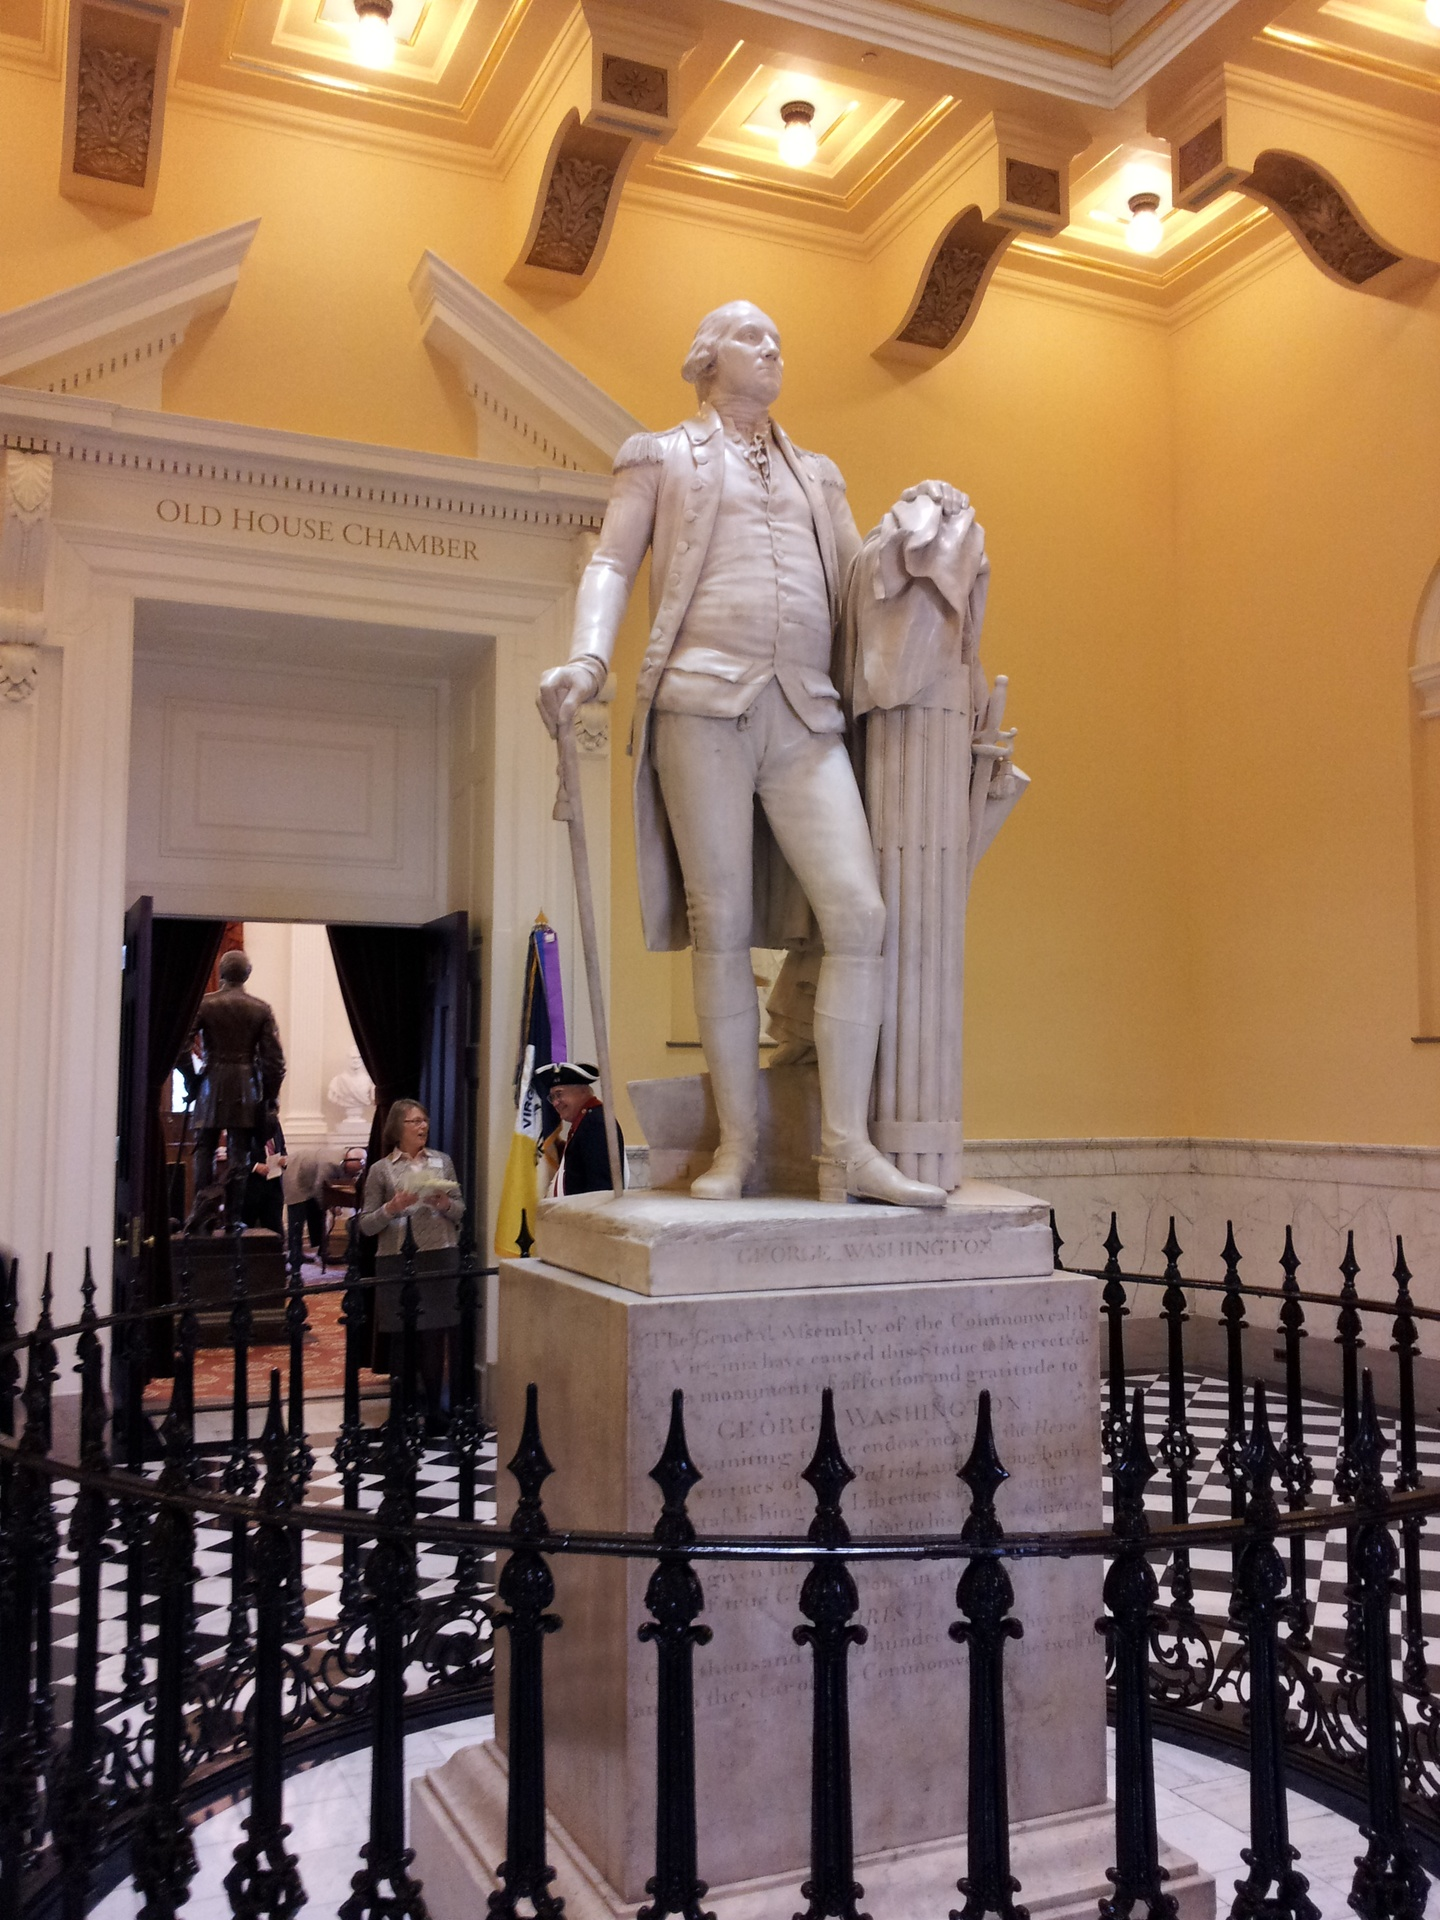 George Washington Statue in Lobby of Old House Chamber